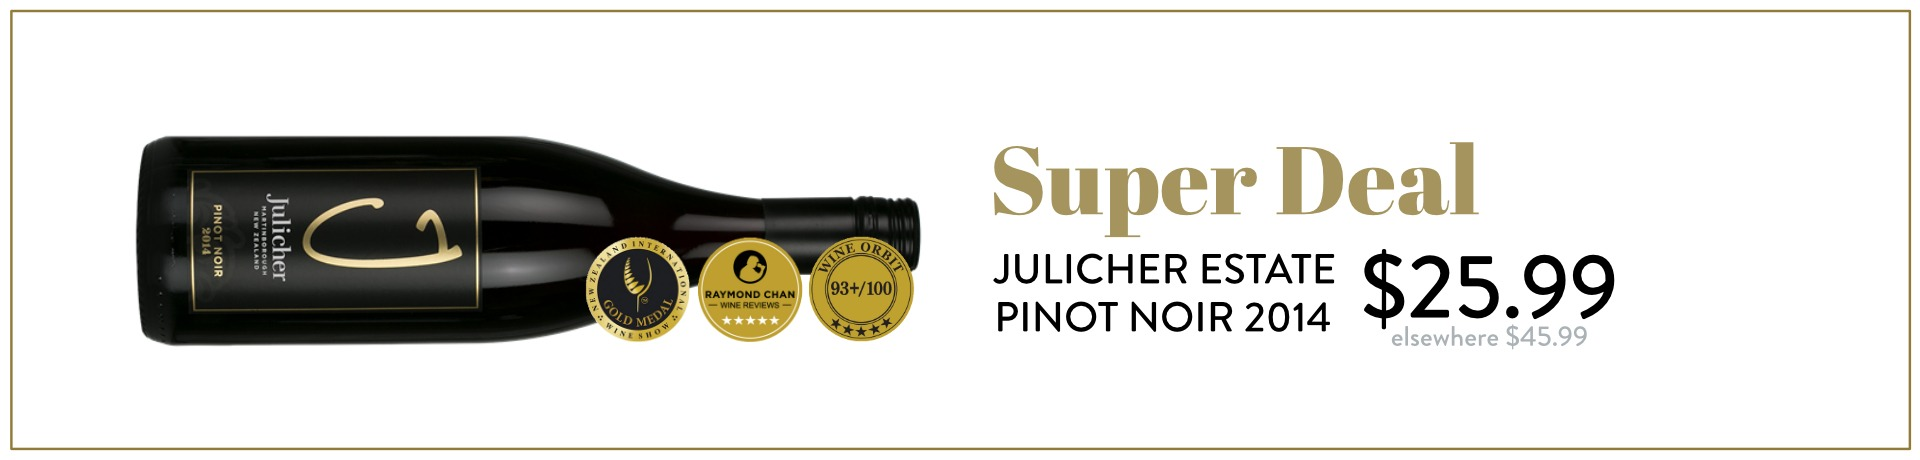 Julicher Estate Pinot Noir